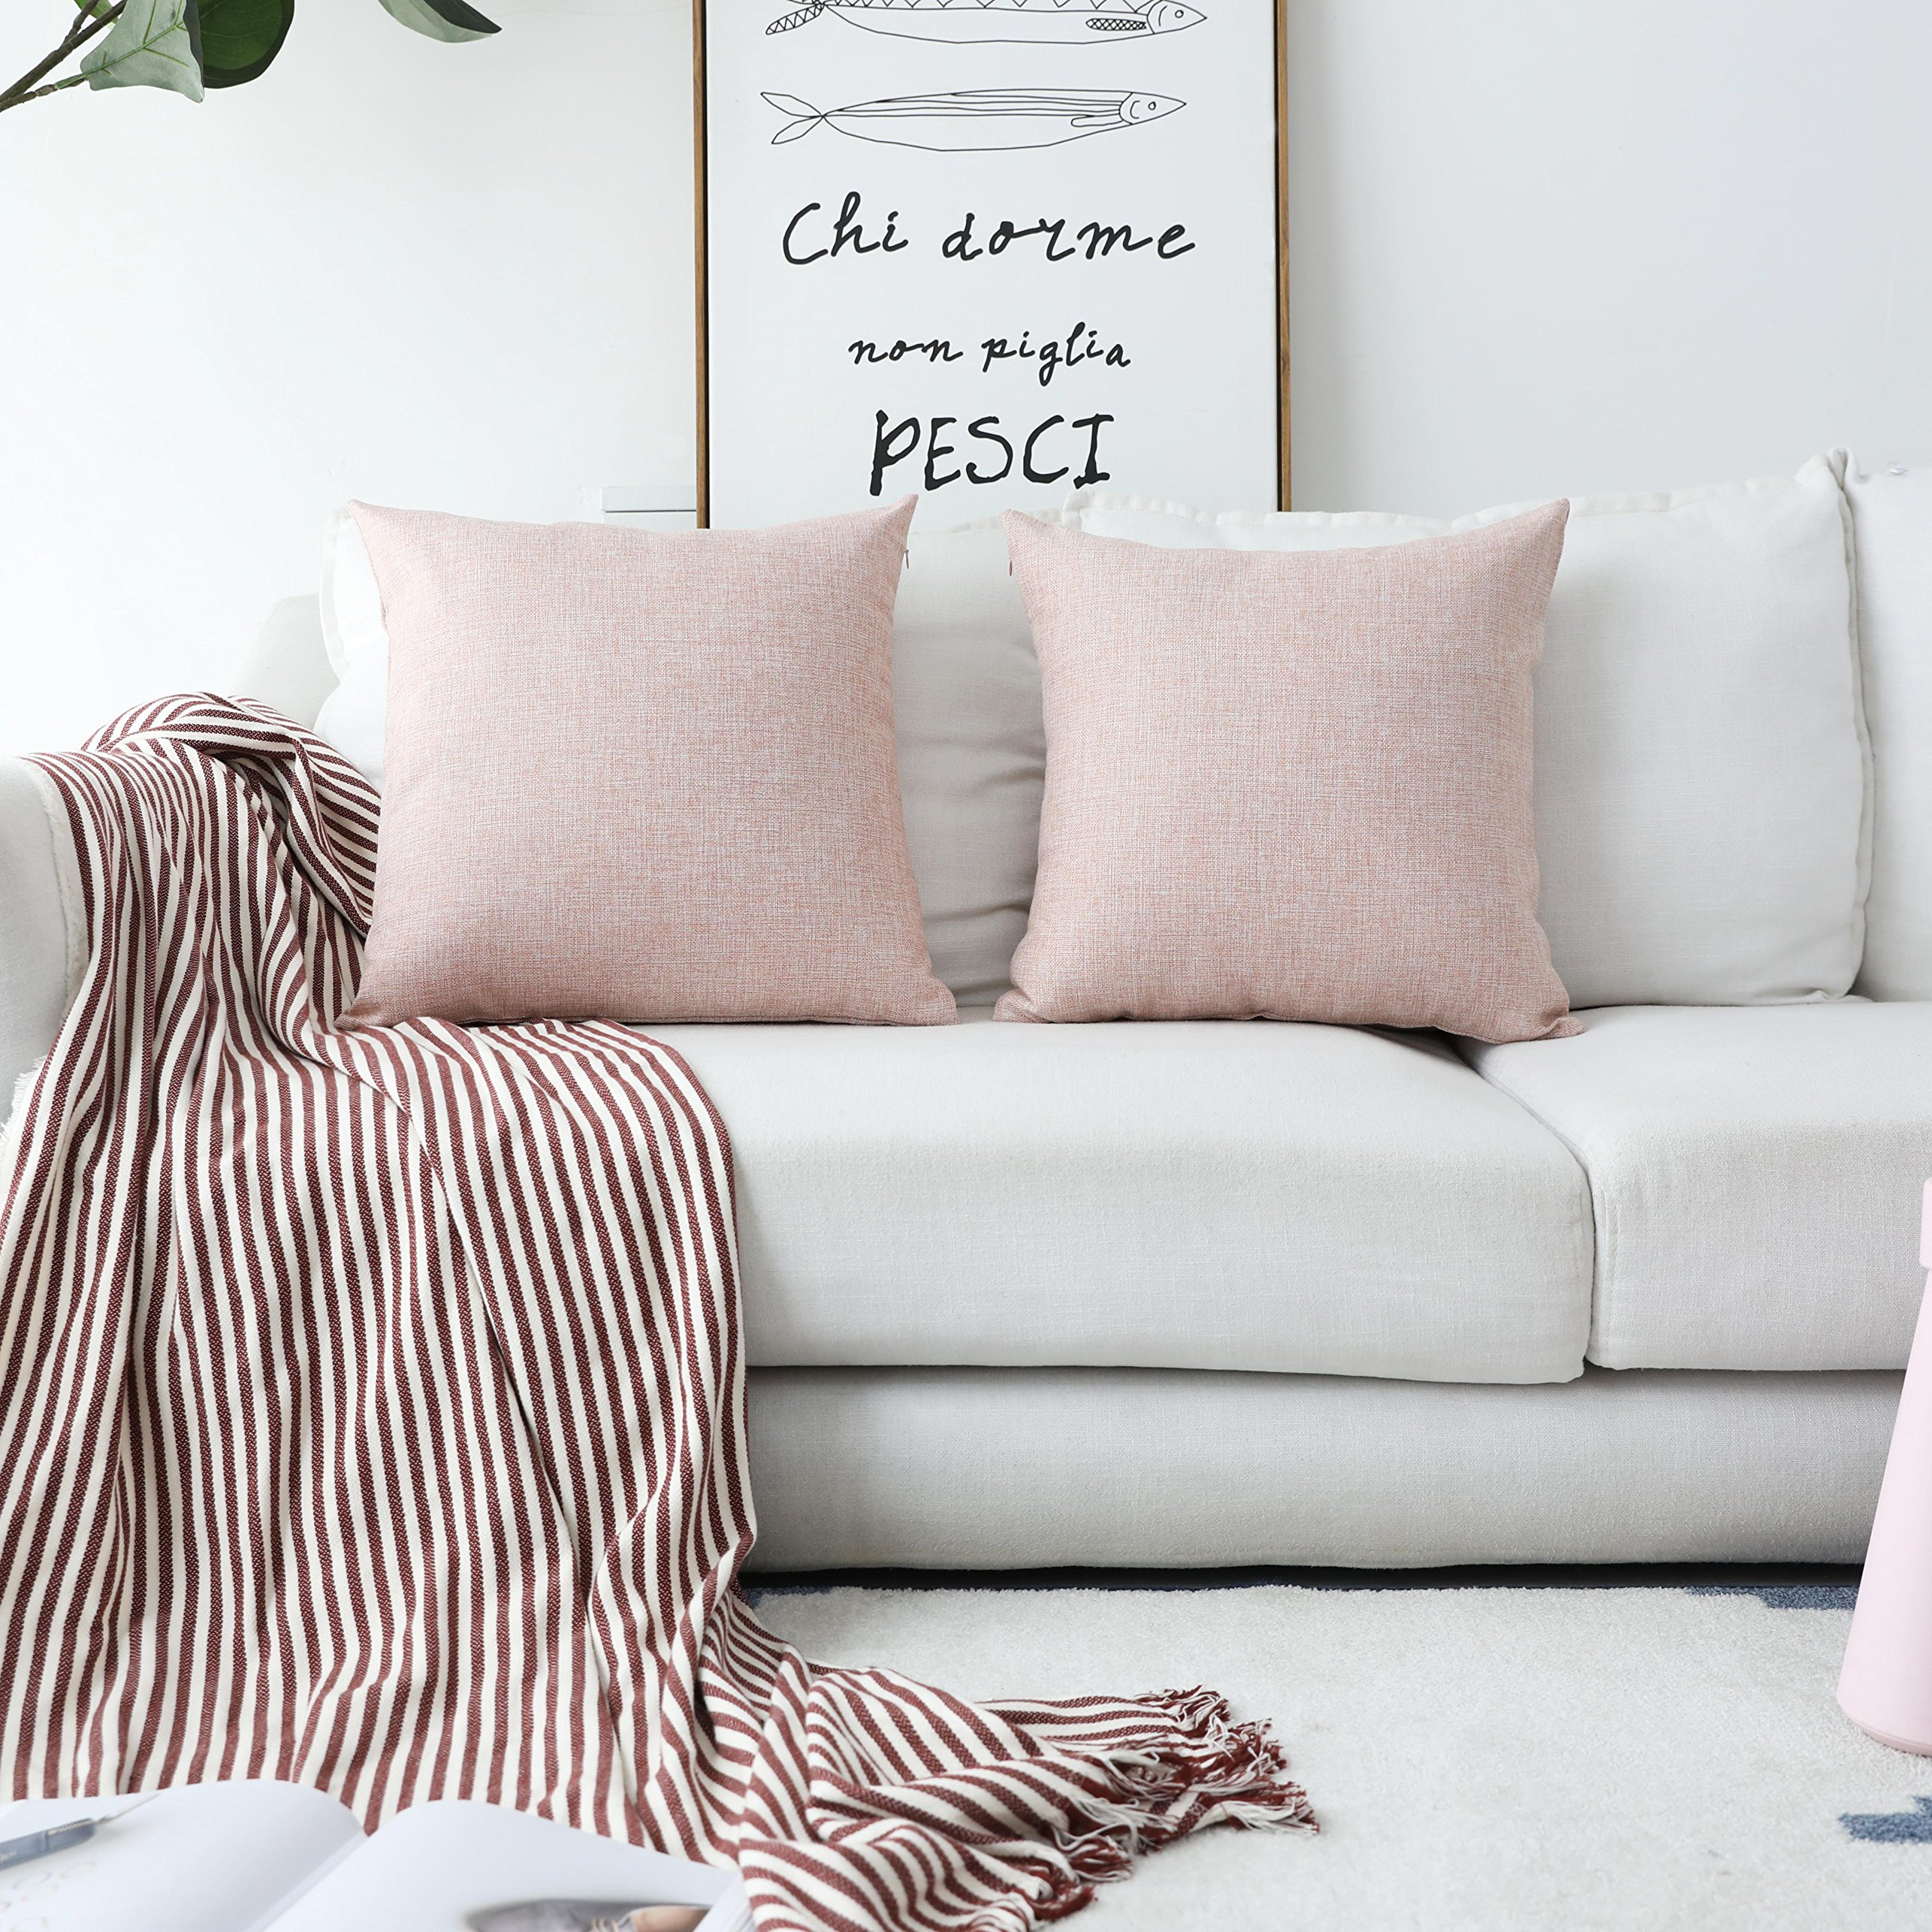 HOME BRILLIANT Decorative Pillows Covers Lined Linen Cushion Covers for Bed, Set of 2, 18x18 inches, Baby Pink by HOME BRILLIANT